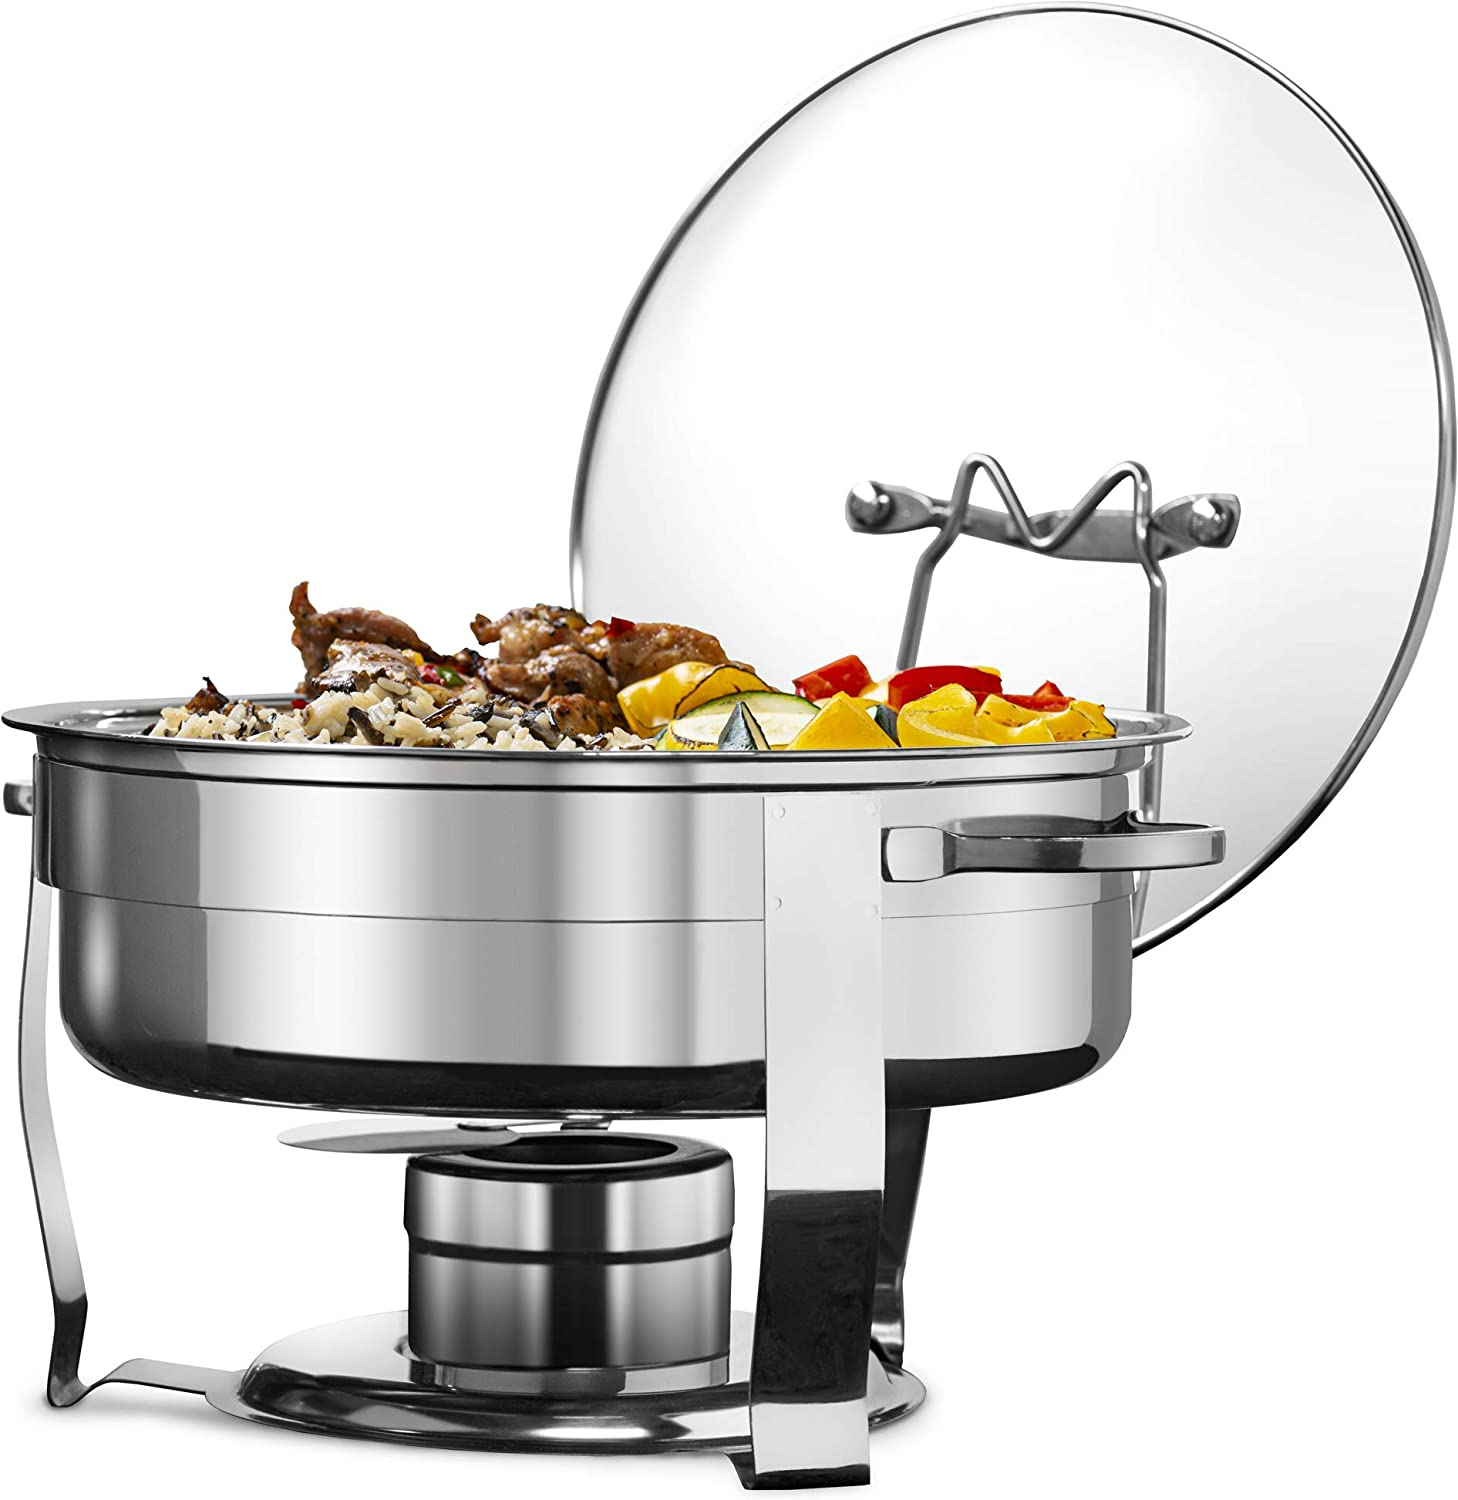 Chafing Dish, by Kook, Warmer, Stainless Steel with Glass Lid, Includes Rack